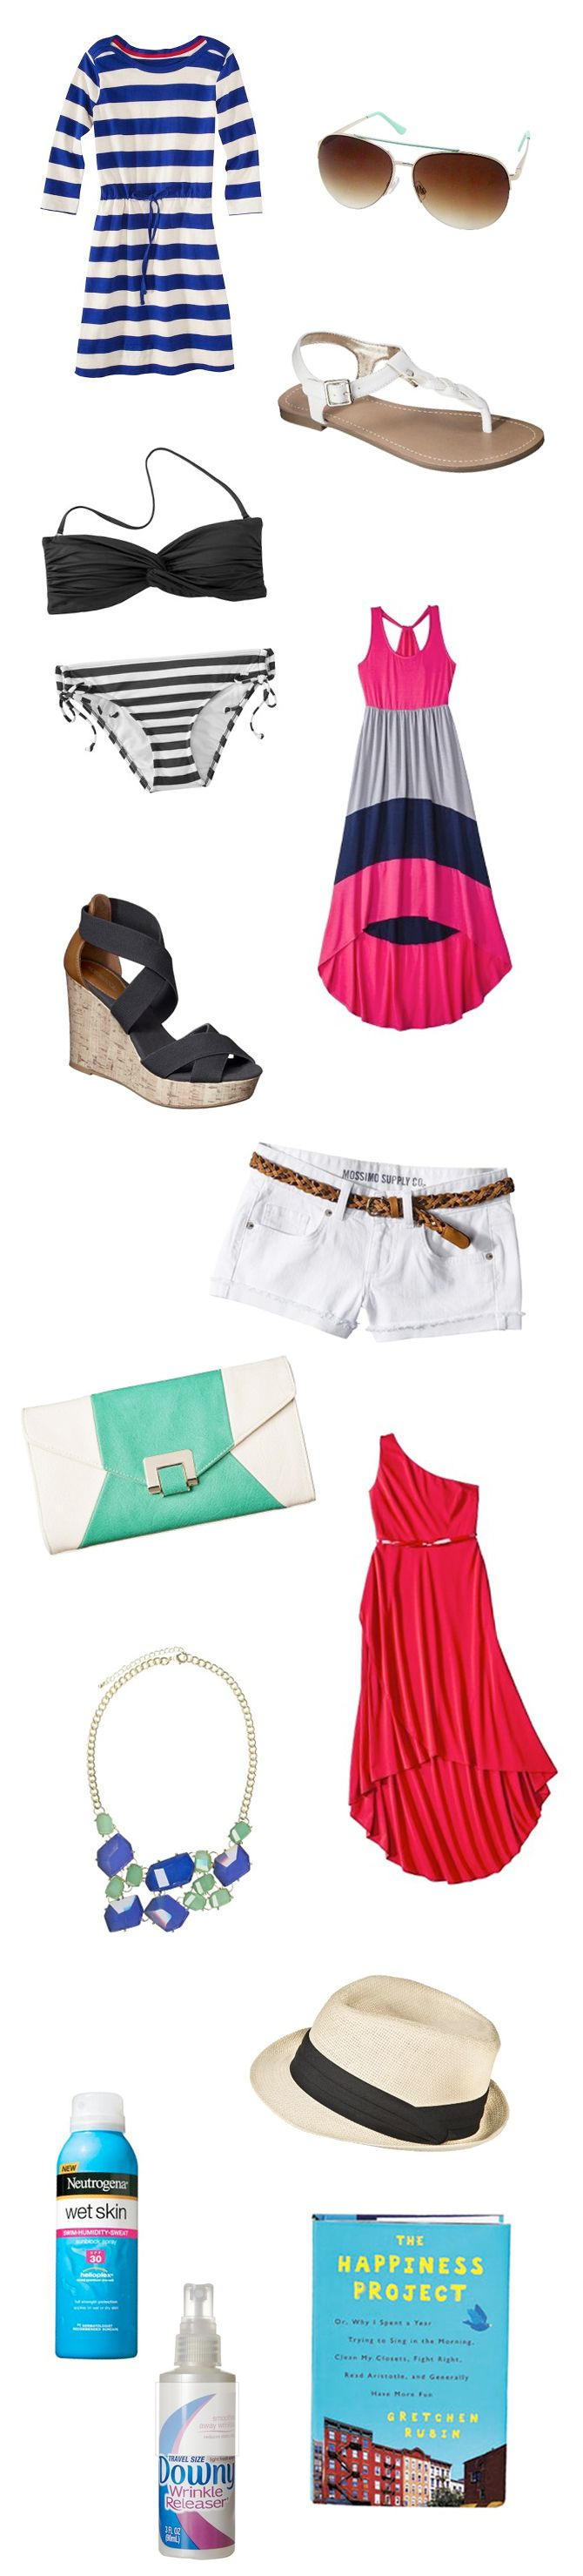 Women's Fashion | Cruise Ship Essentials | Everything you need to pack for your next cruise. All from Target! All under $60! | From the blog Inspiration & A Carry On #womensfashion